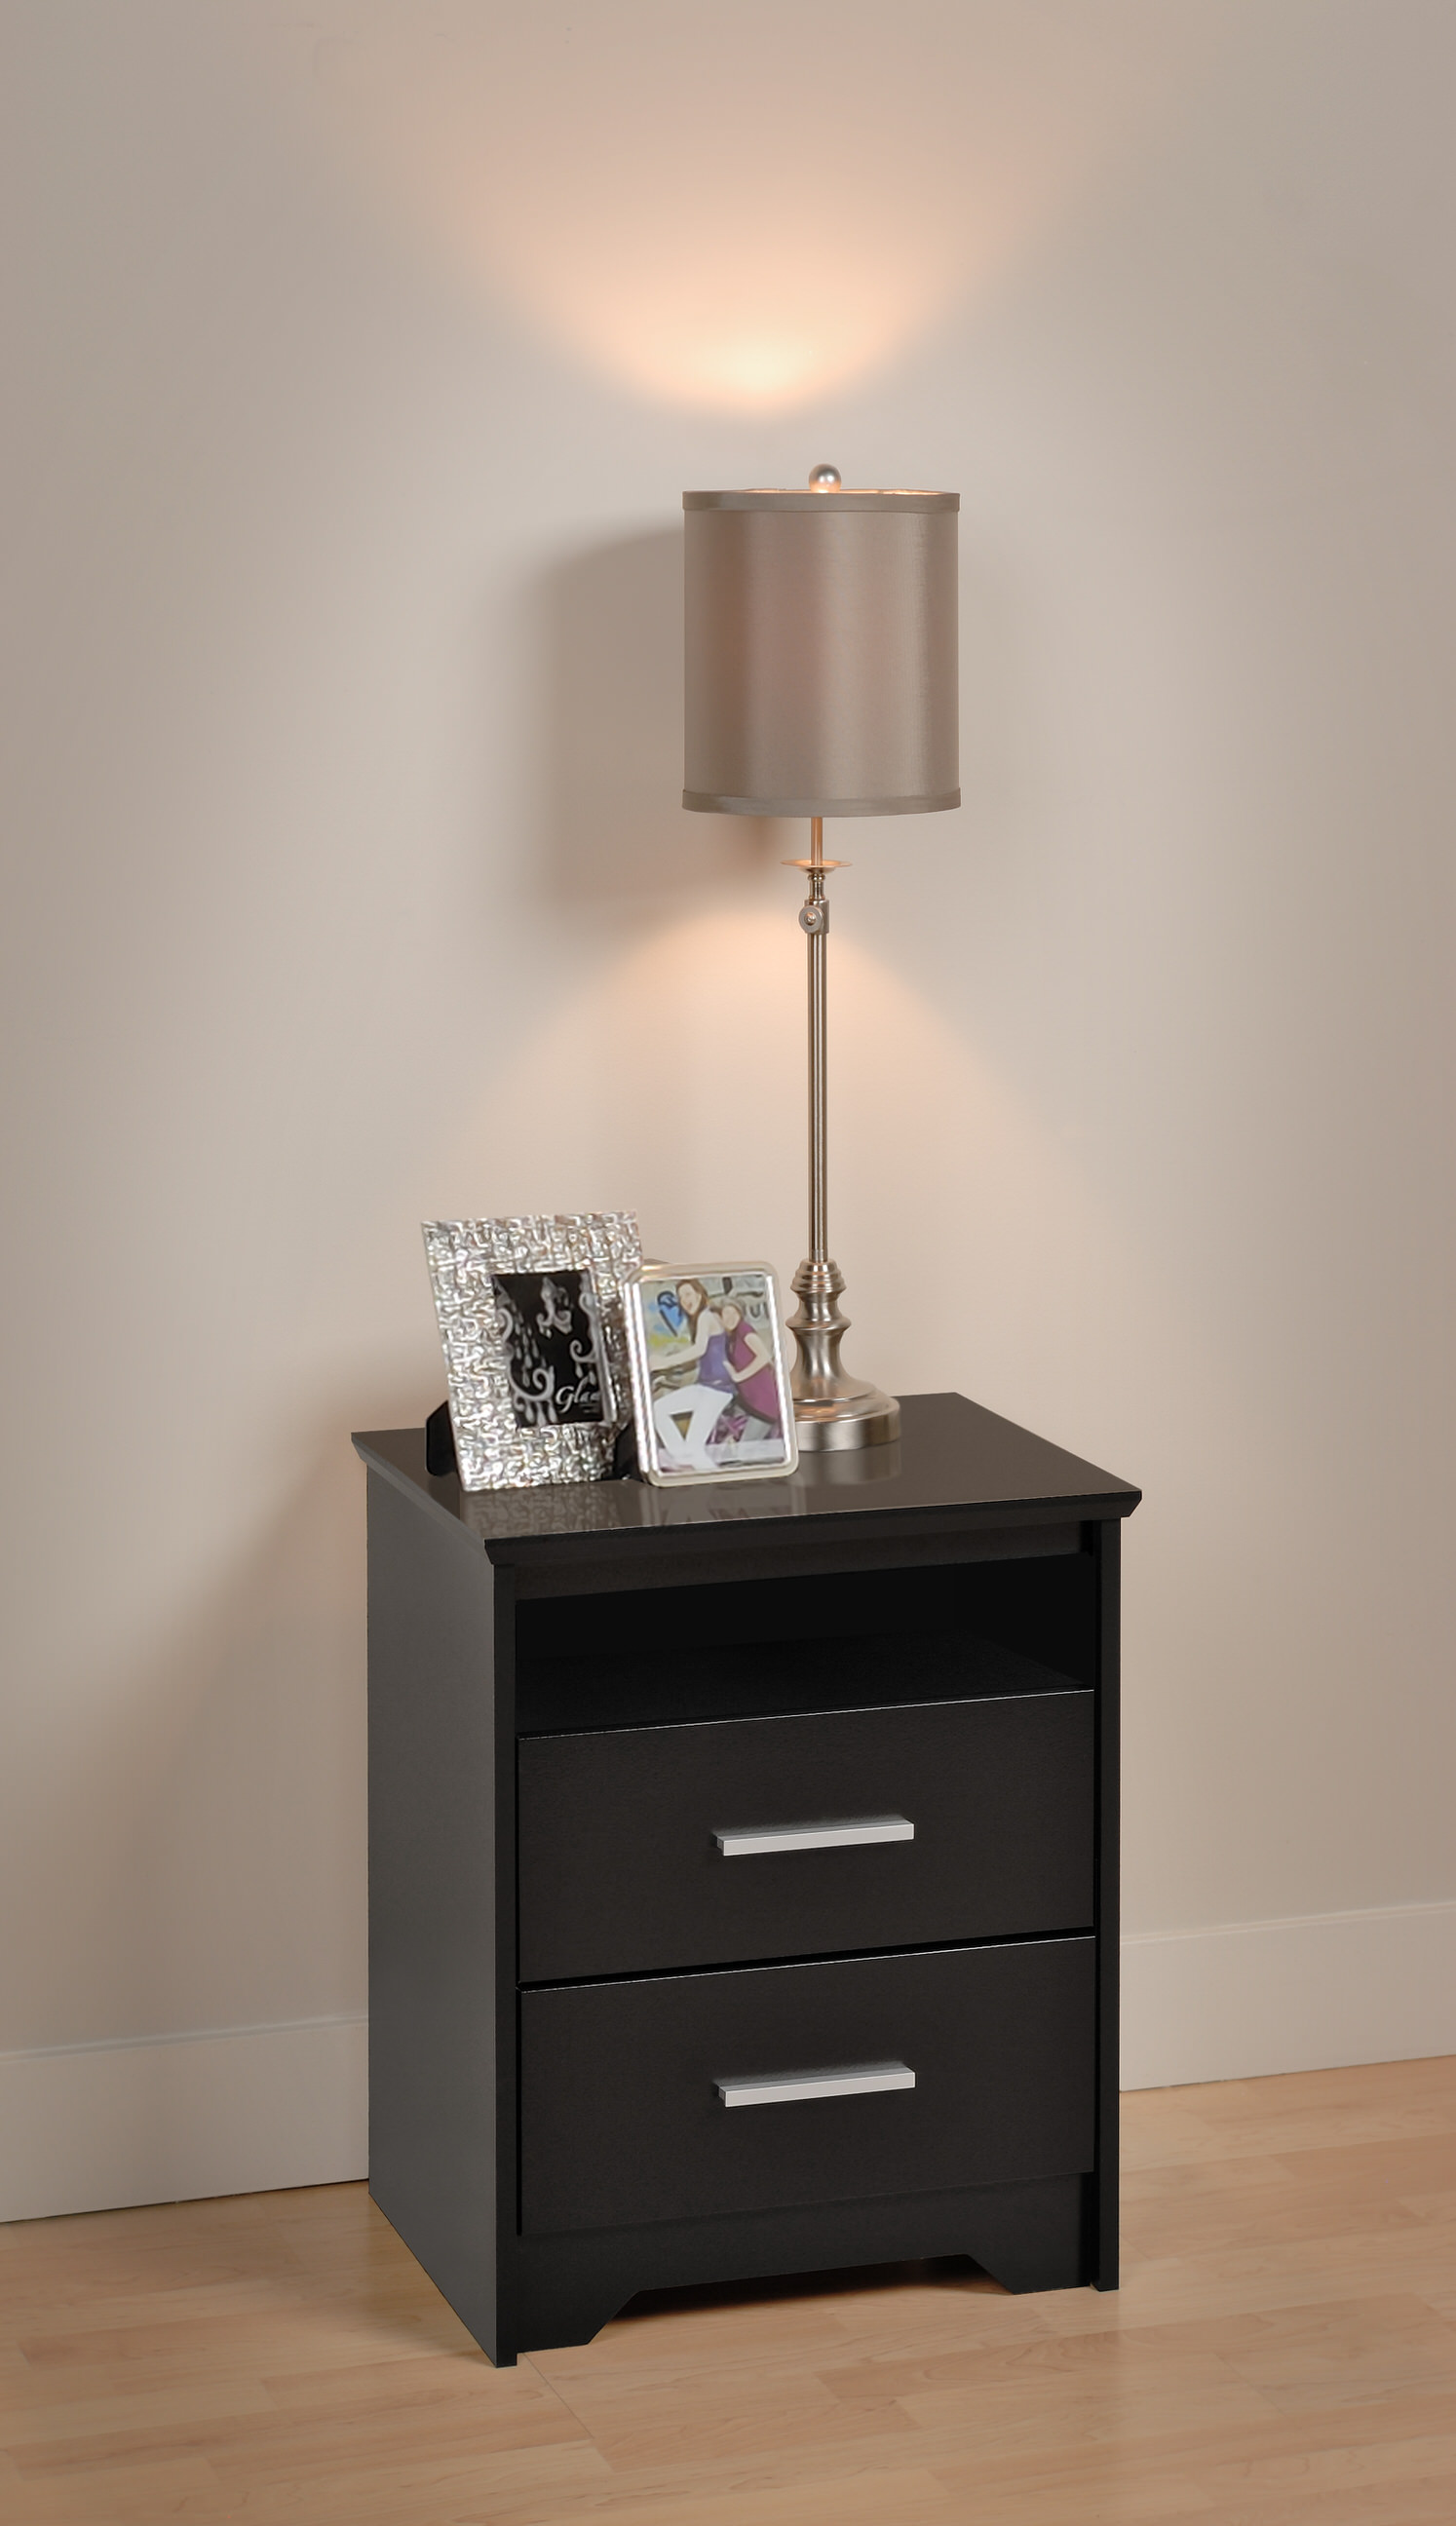 coal harbor 2 drawer tall nightstand by prepac. Black Bedroom Furniture Sets. Home Design Ideas